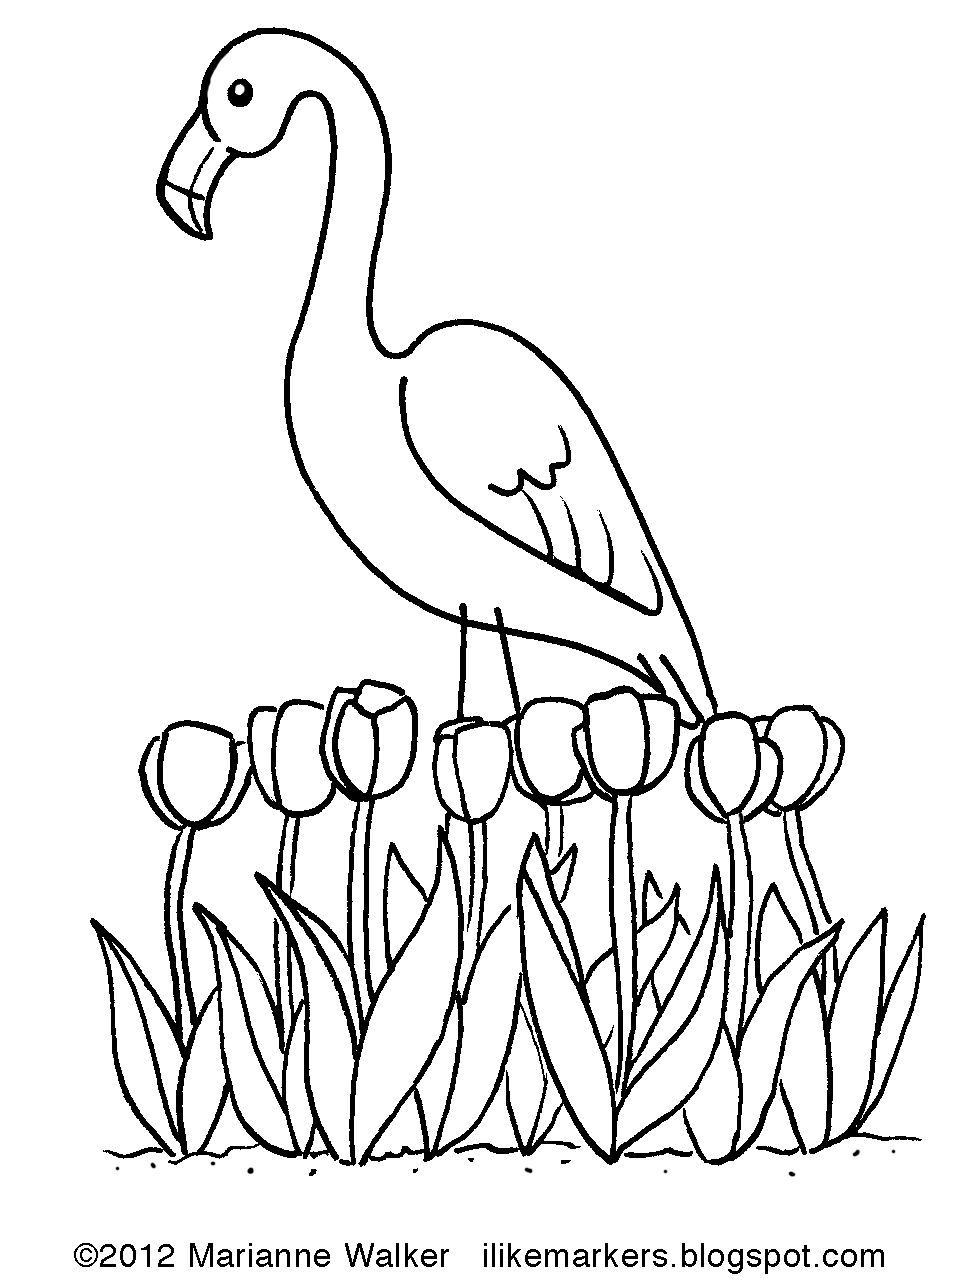 Pink Flamingo Coloring Pages  to Print 2s - Free For Children